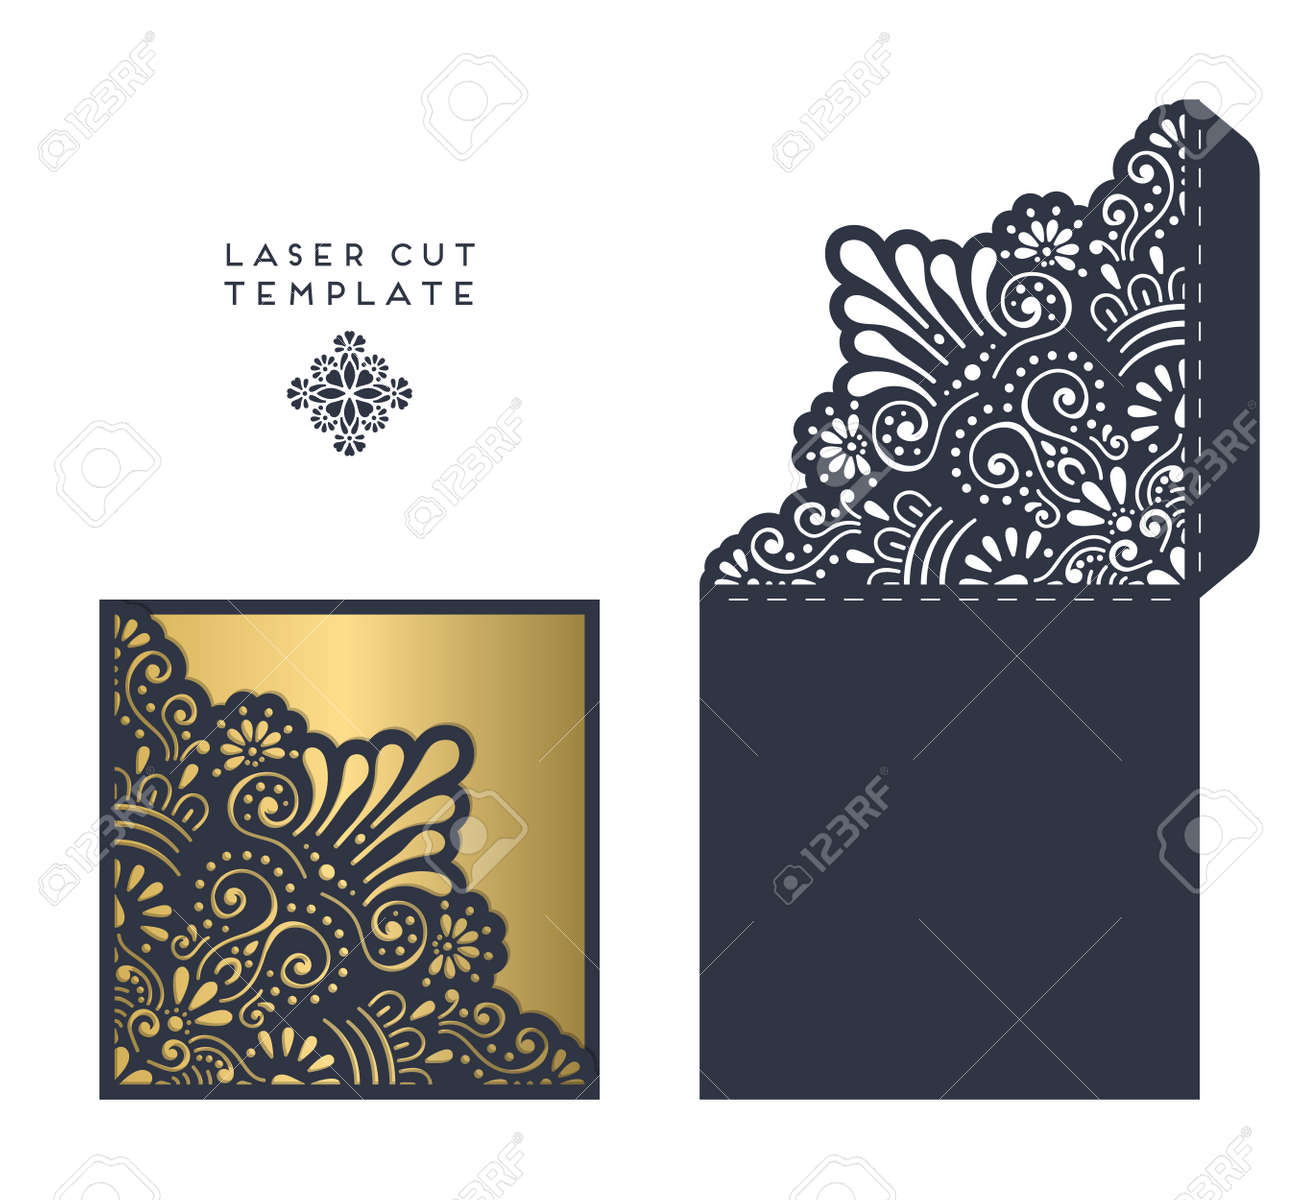 Laser Cut Template Envelope Wedding Card Invitation Royalty Free